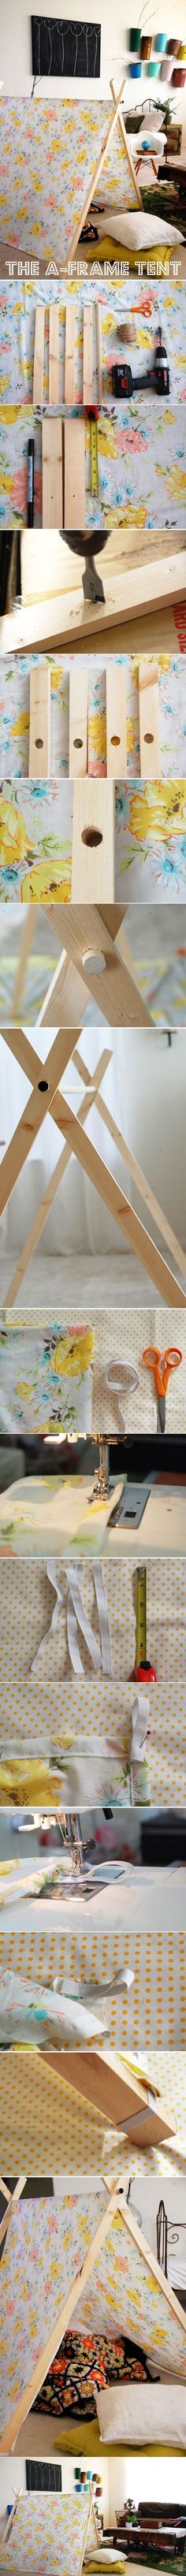 idea, play tents, craft, diy tutorial, afram tent